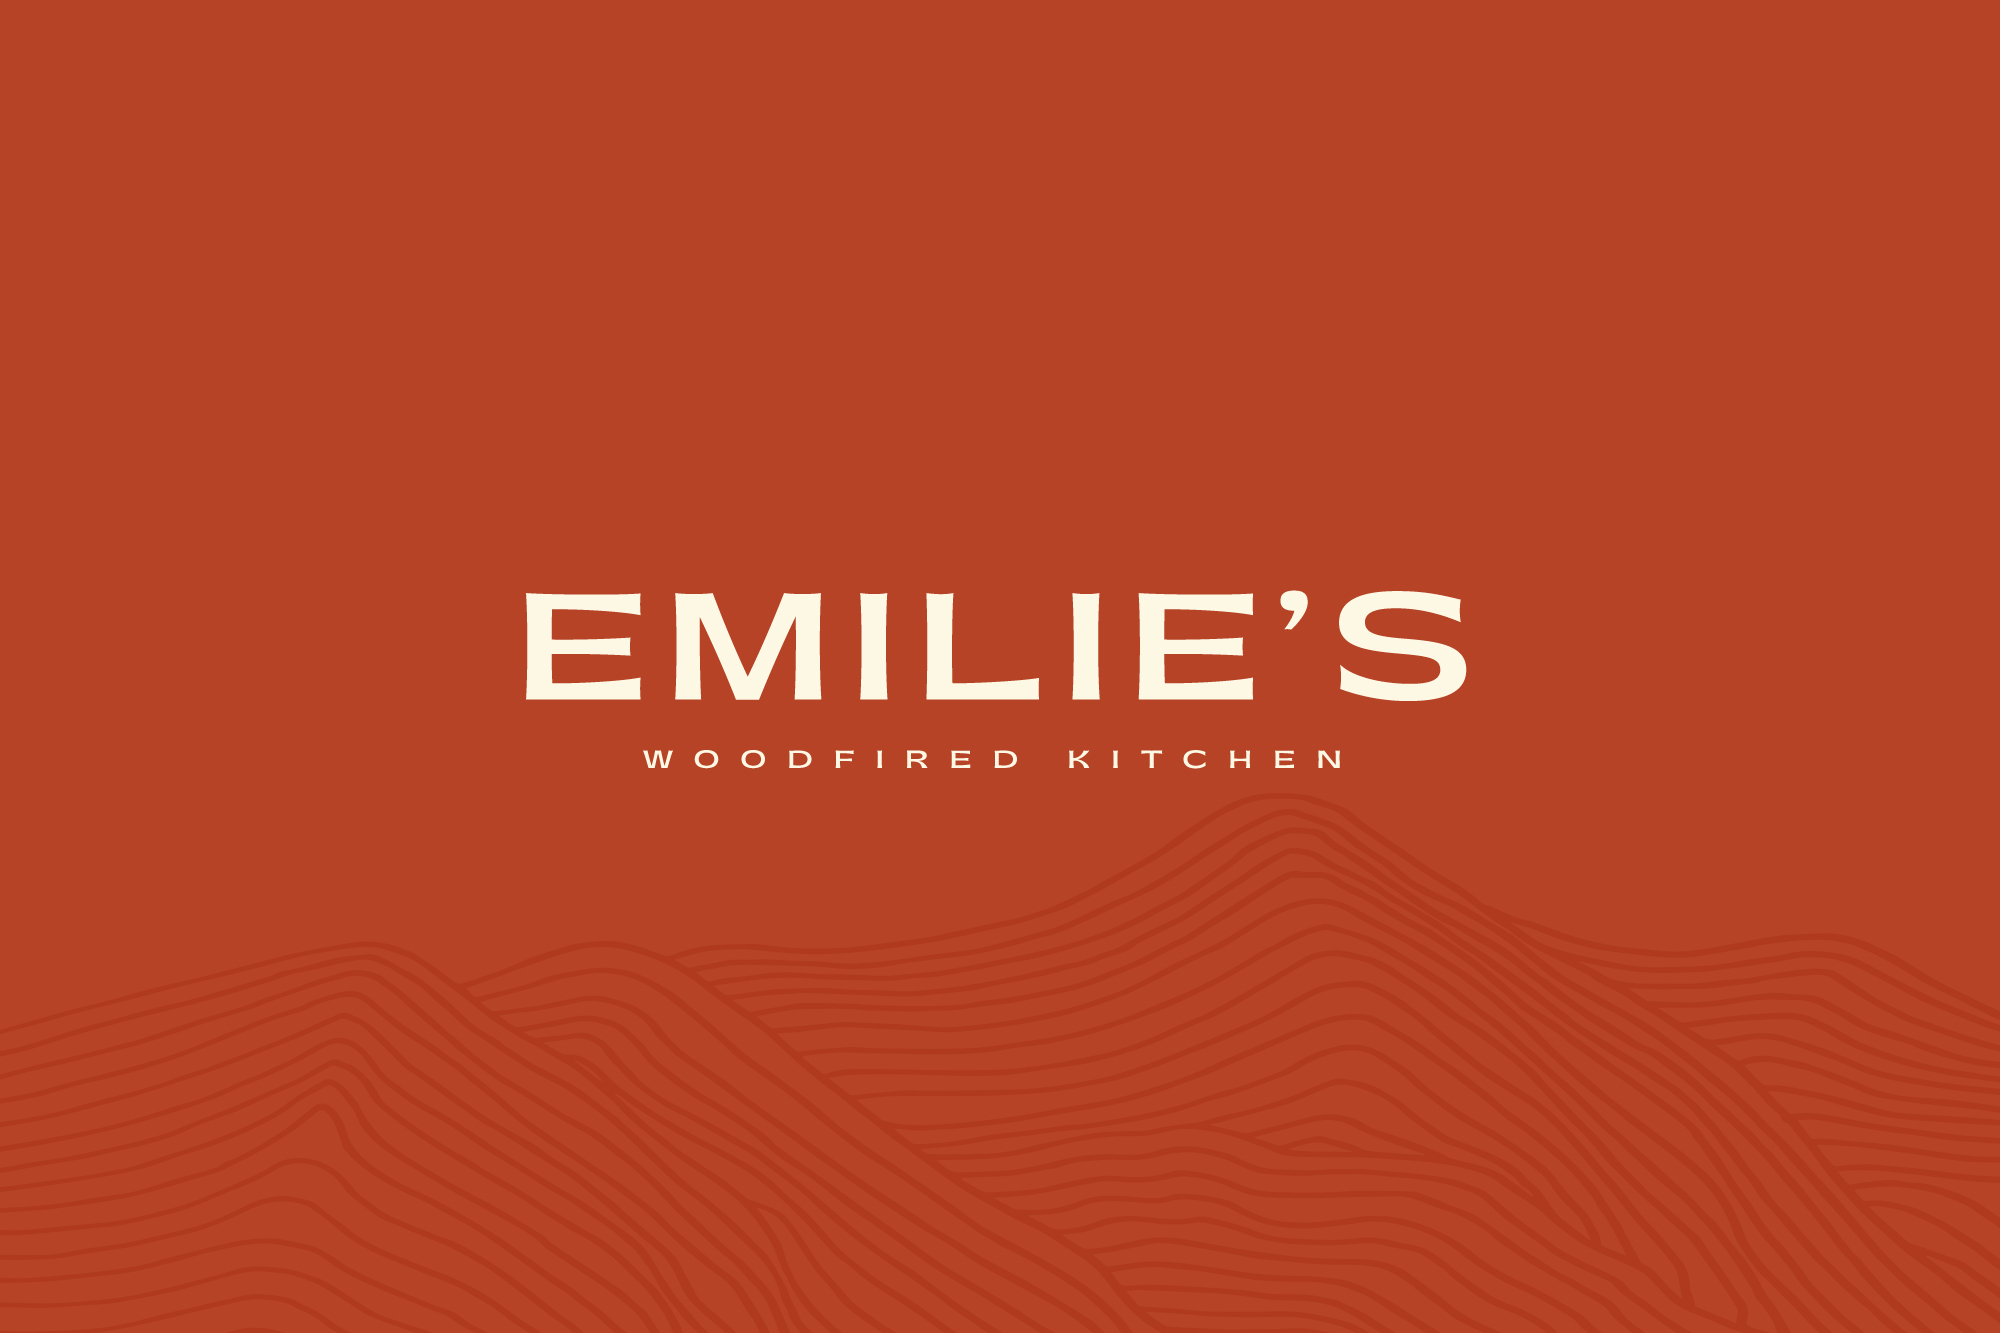 Cover image: Emilie's